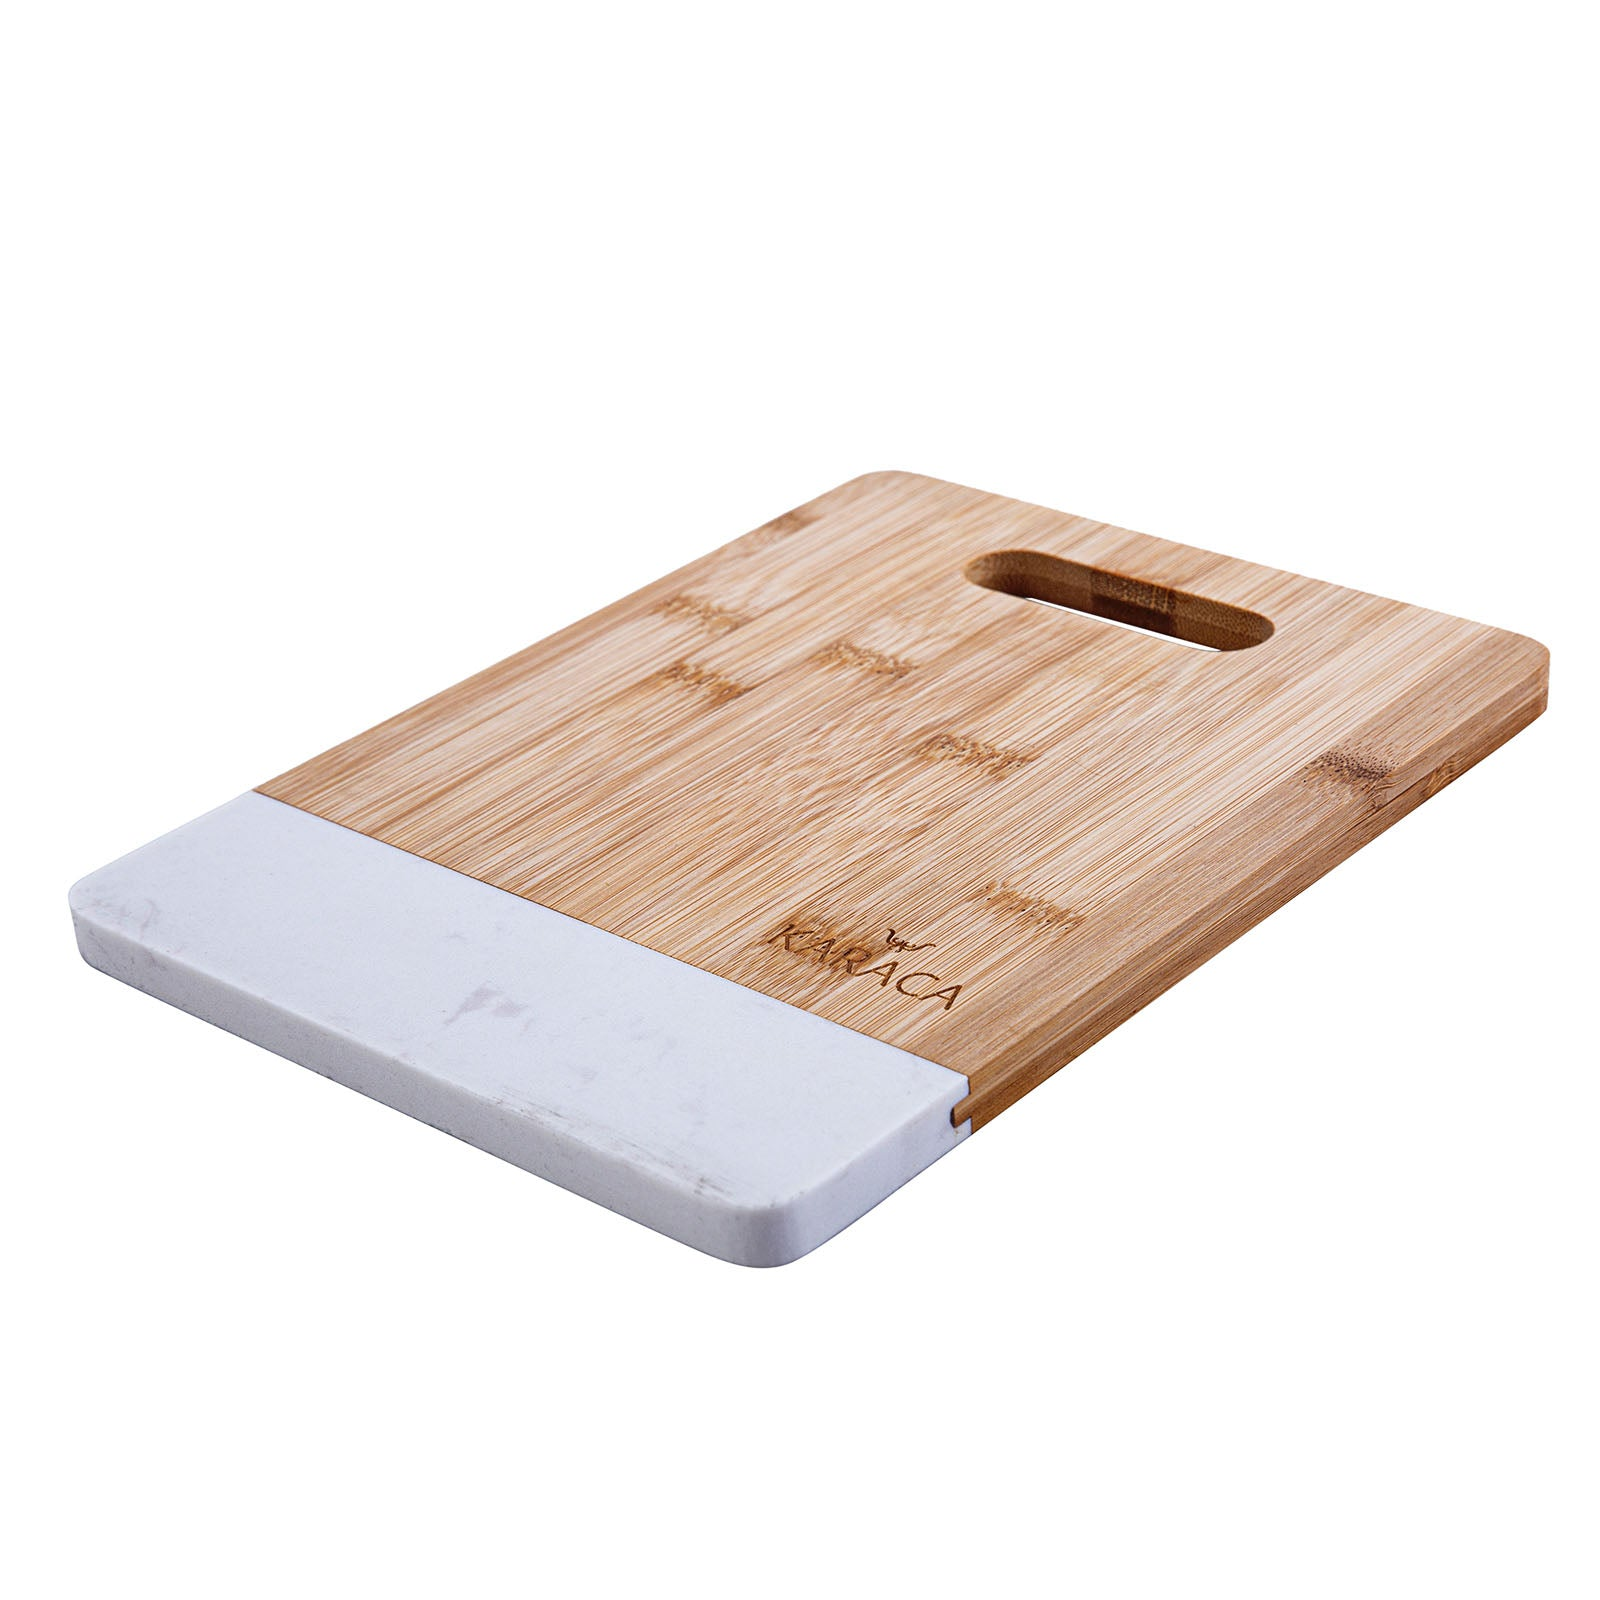 Karaca Plat Cutting Board-S 153.03.07.8902